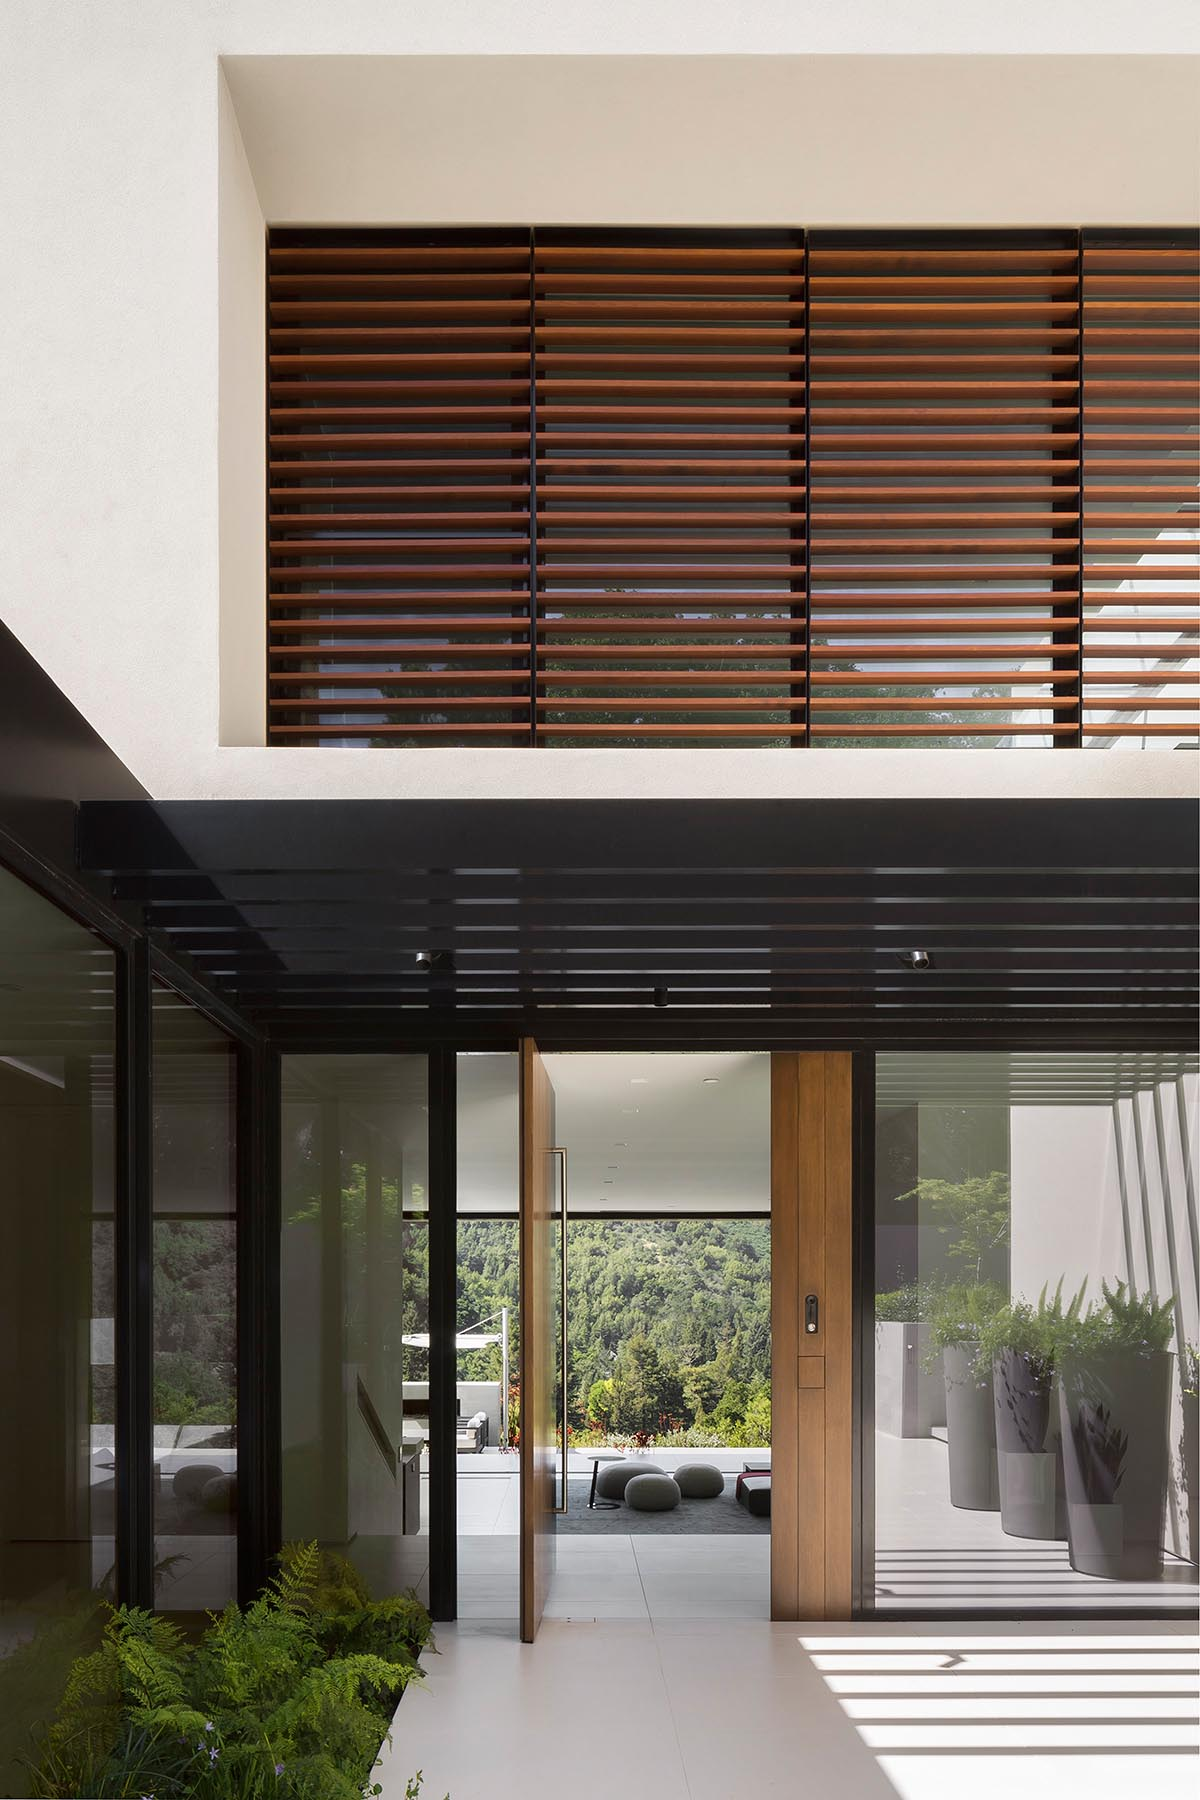 Upon arrival at this modern house, a sunken entry courtyard guides visitors to the oversized pivoting wood front door.